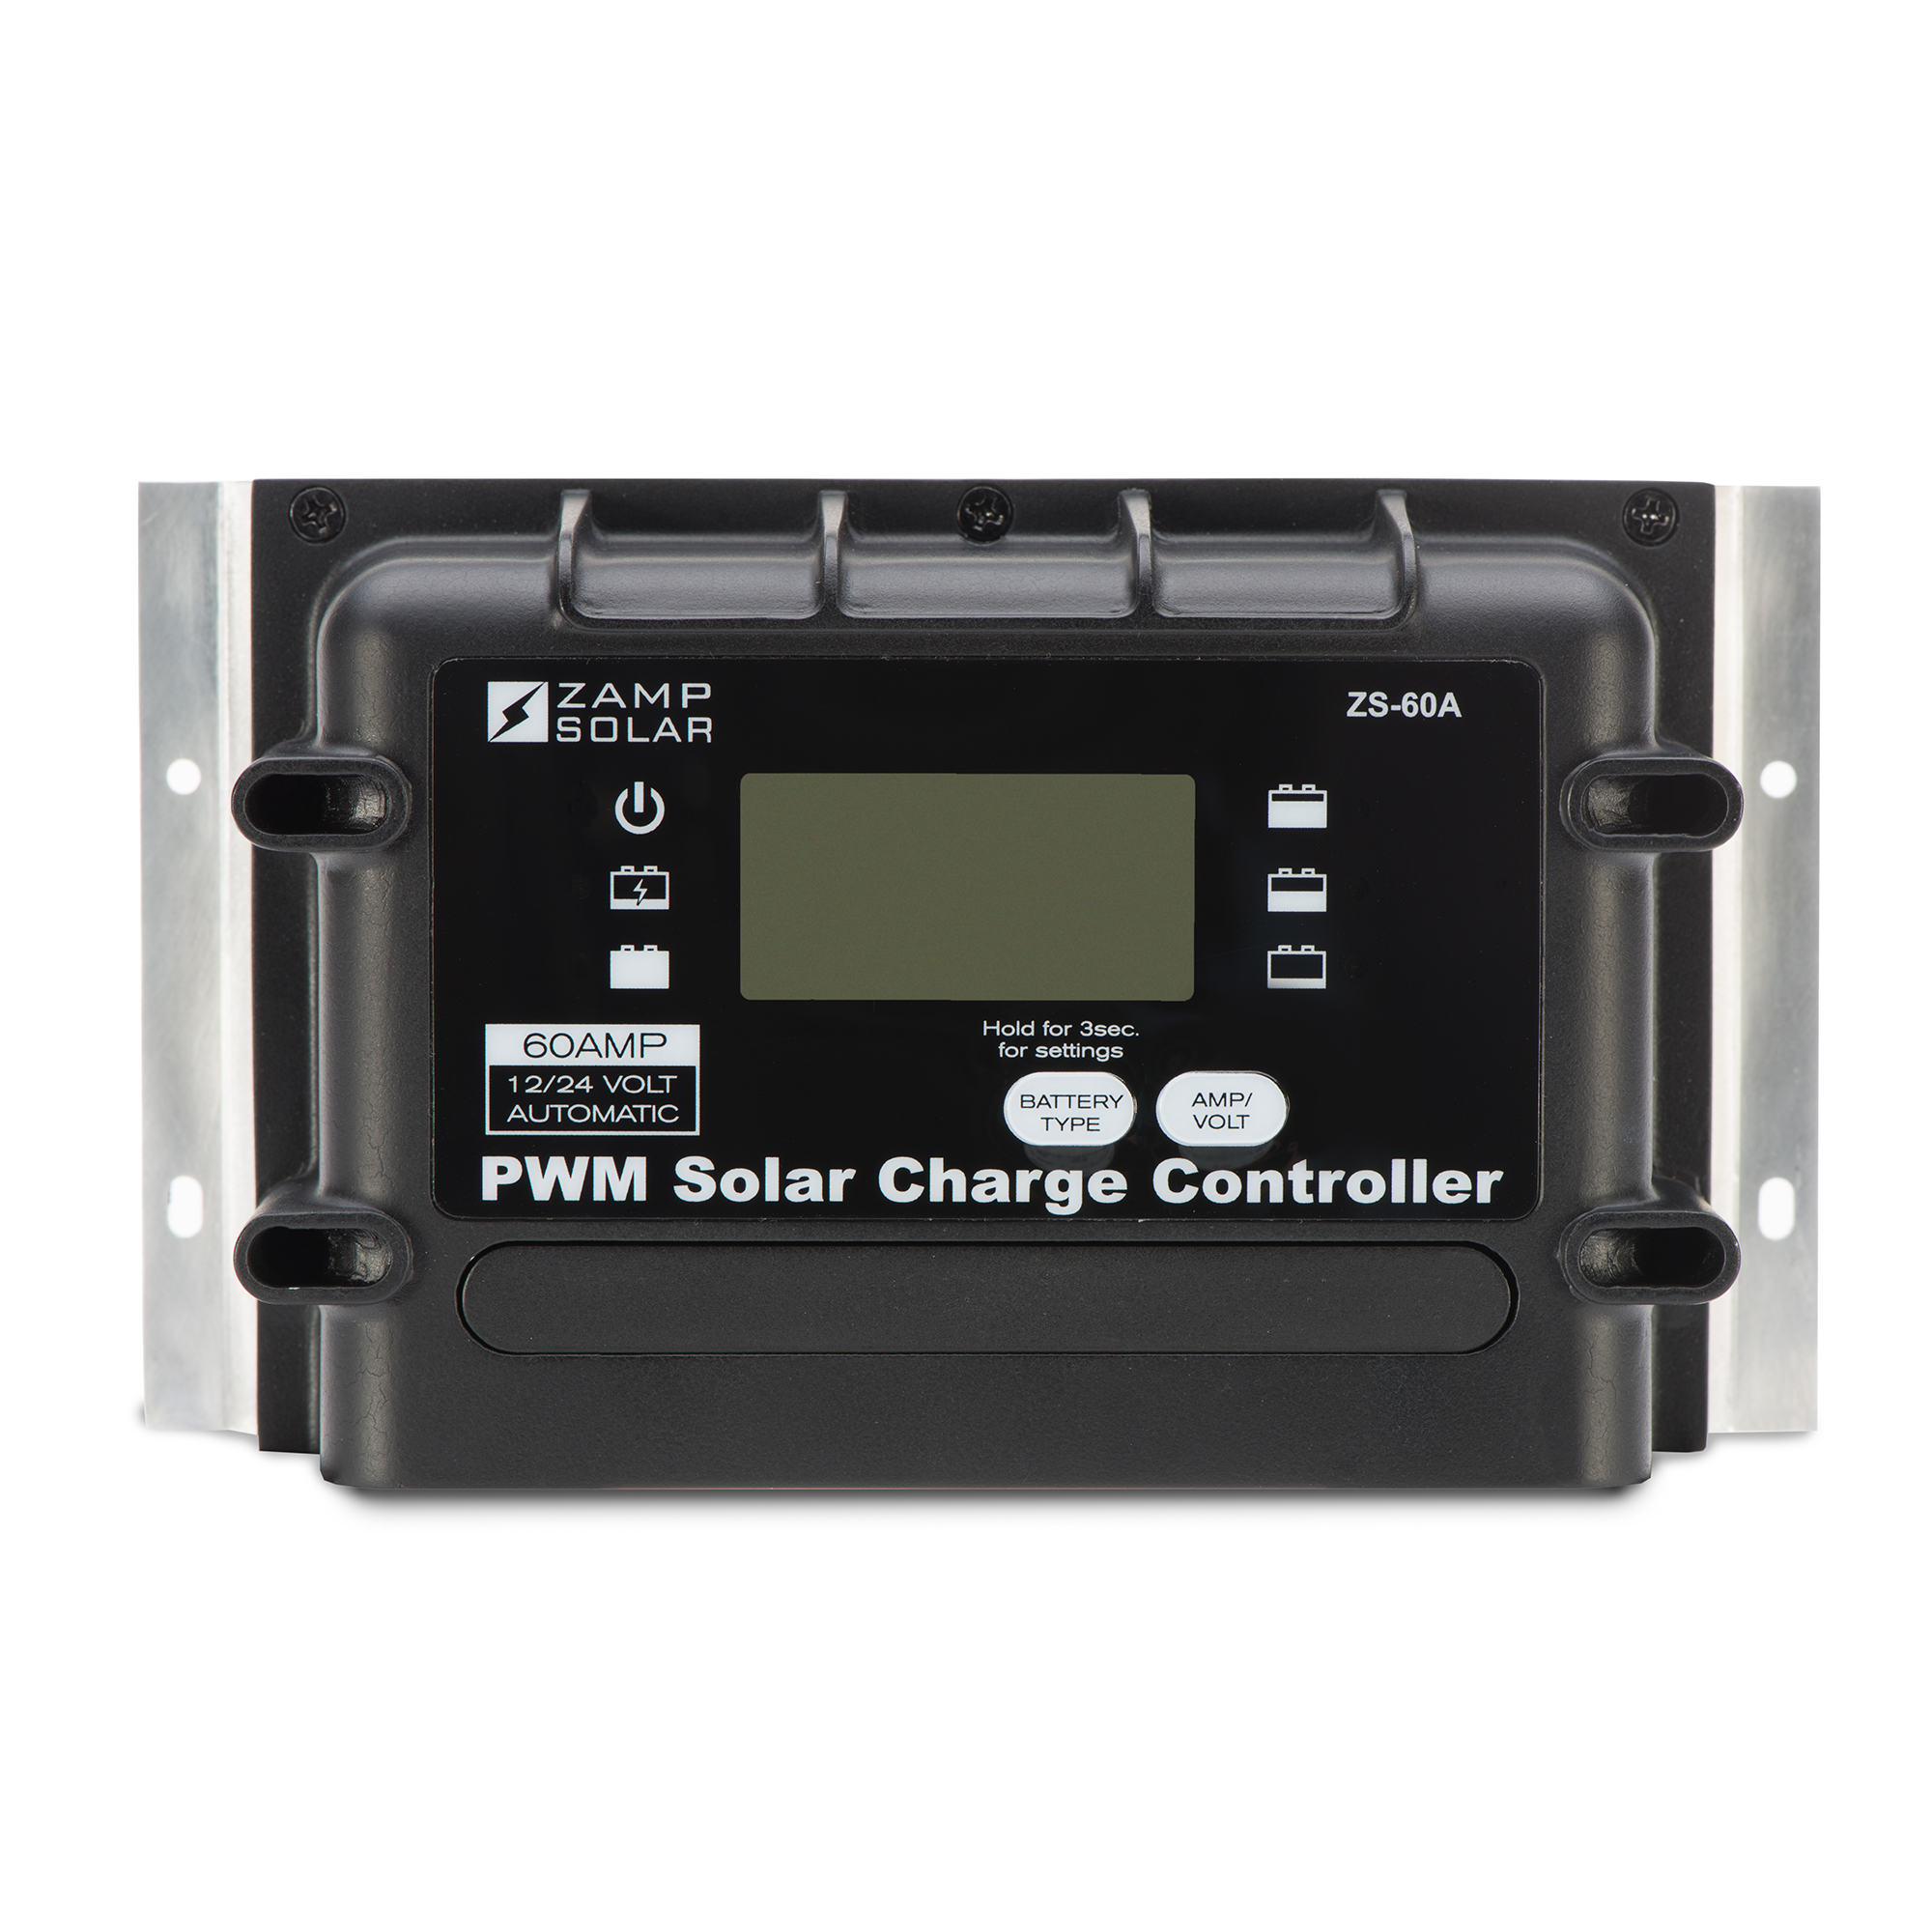 ZS-60A Zamp Solar Battery Charger Controller Use With Zamp Solar 12